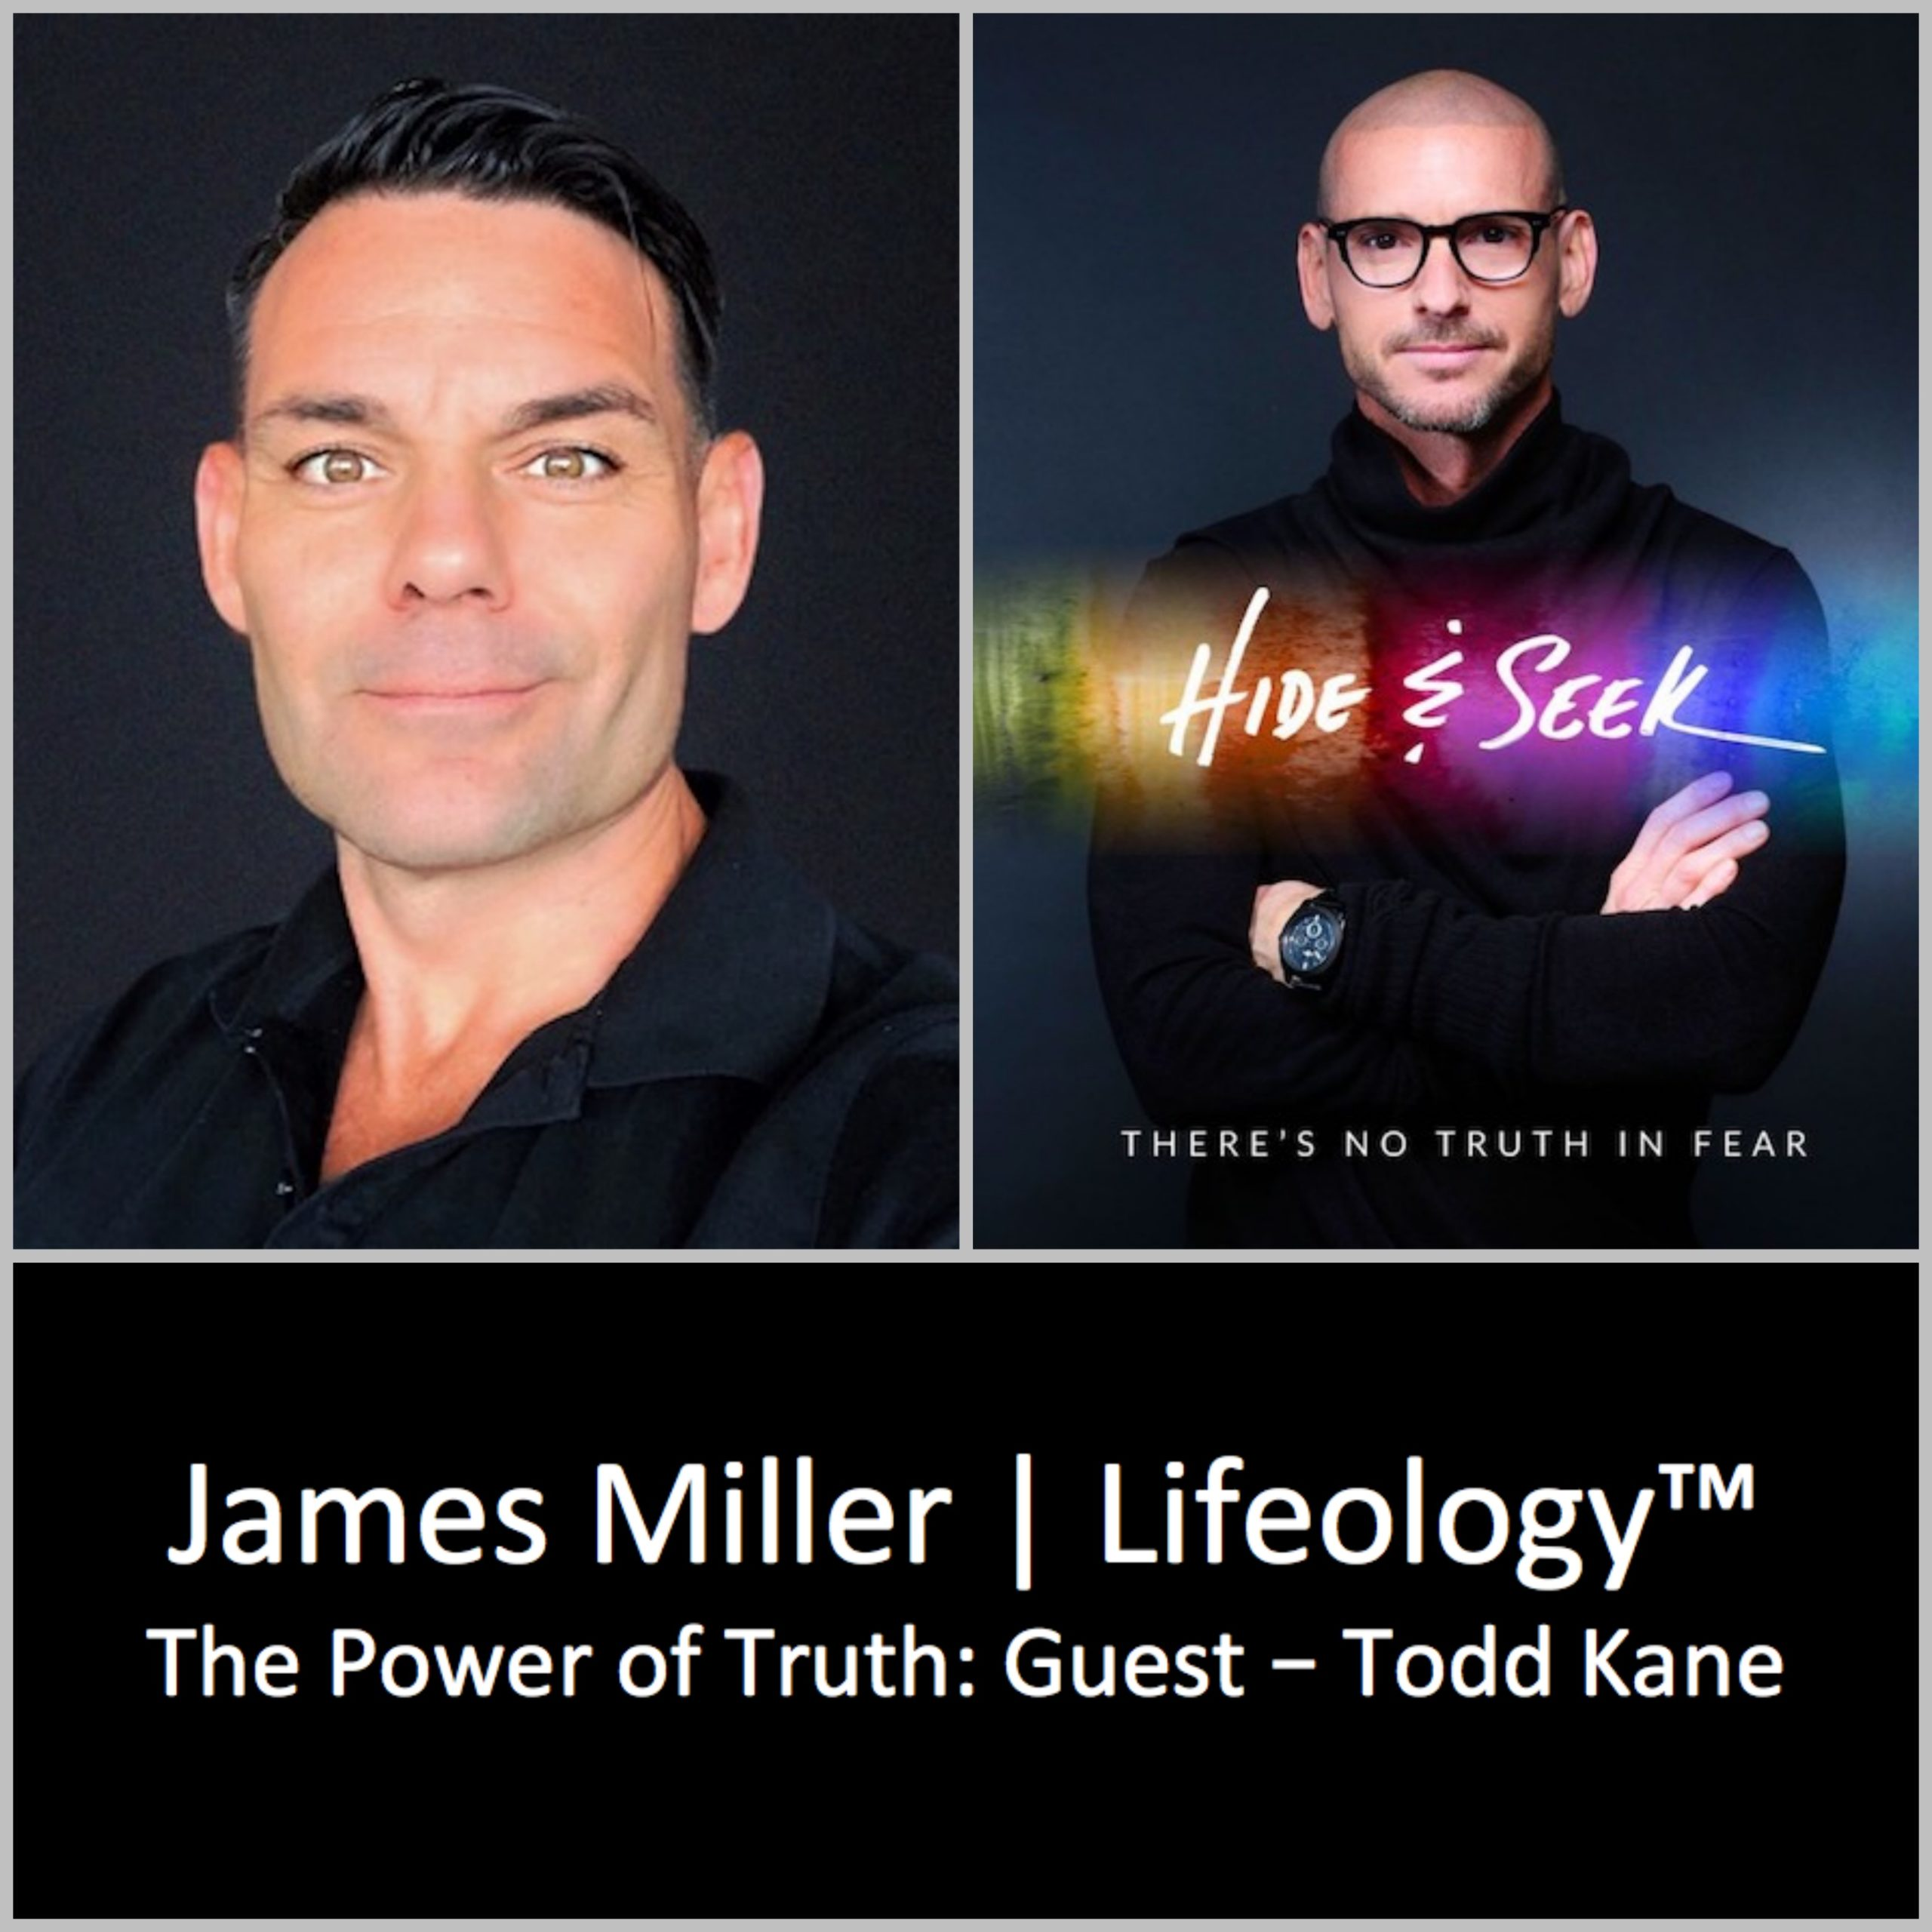 In Hide & Seek Todd Kane #IAmToddKane takes us into his hidden places to discover the truth and expose fear for the fraud it is. There's no truth in fear. #success #truth #gay #sexuality #hope #healing #abuse